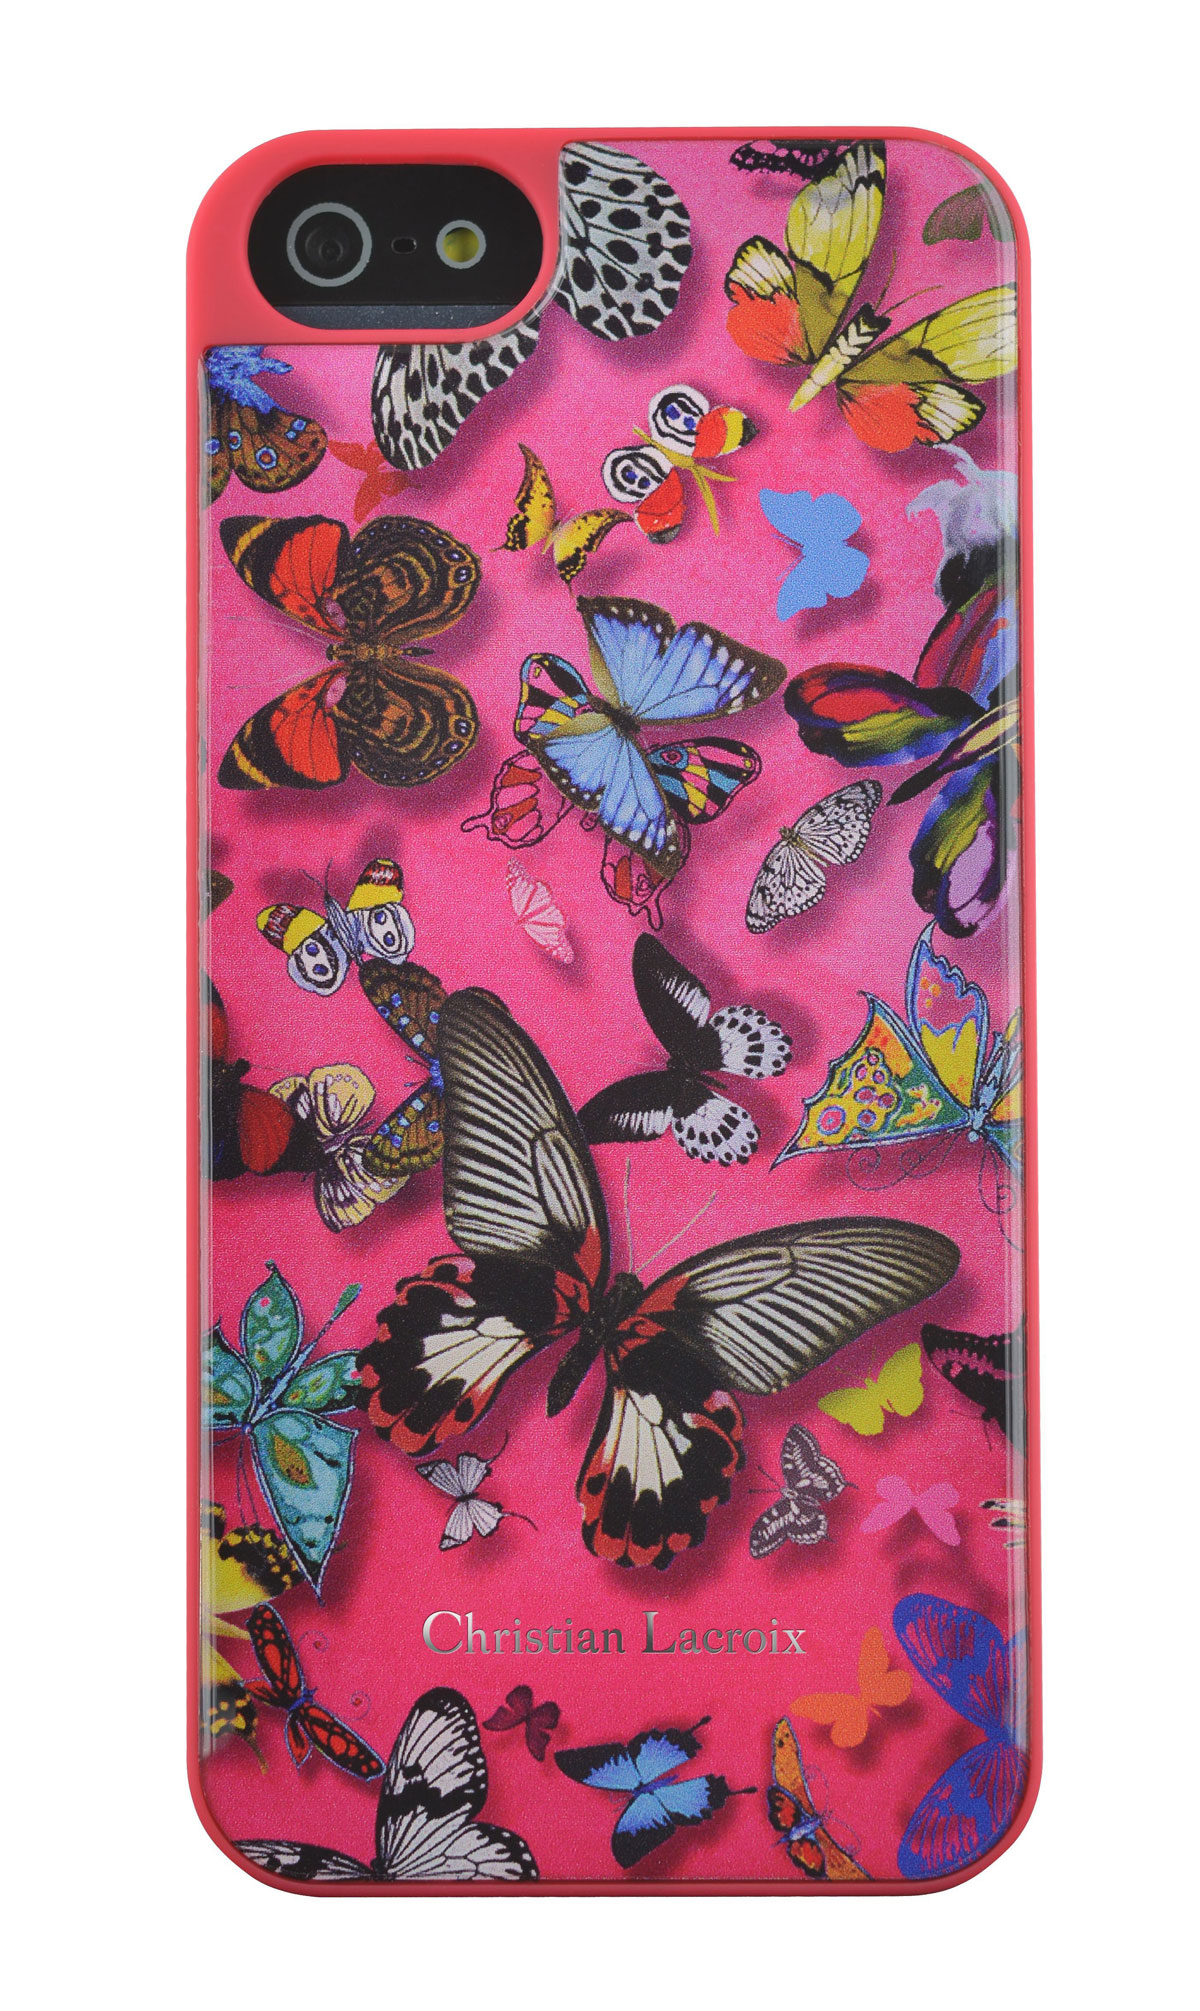 Christian lacroix 39 s first line of smartphone accessories extravaganzi - Christian lacroix accessories ...